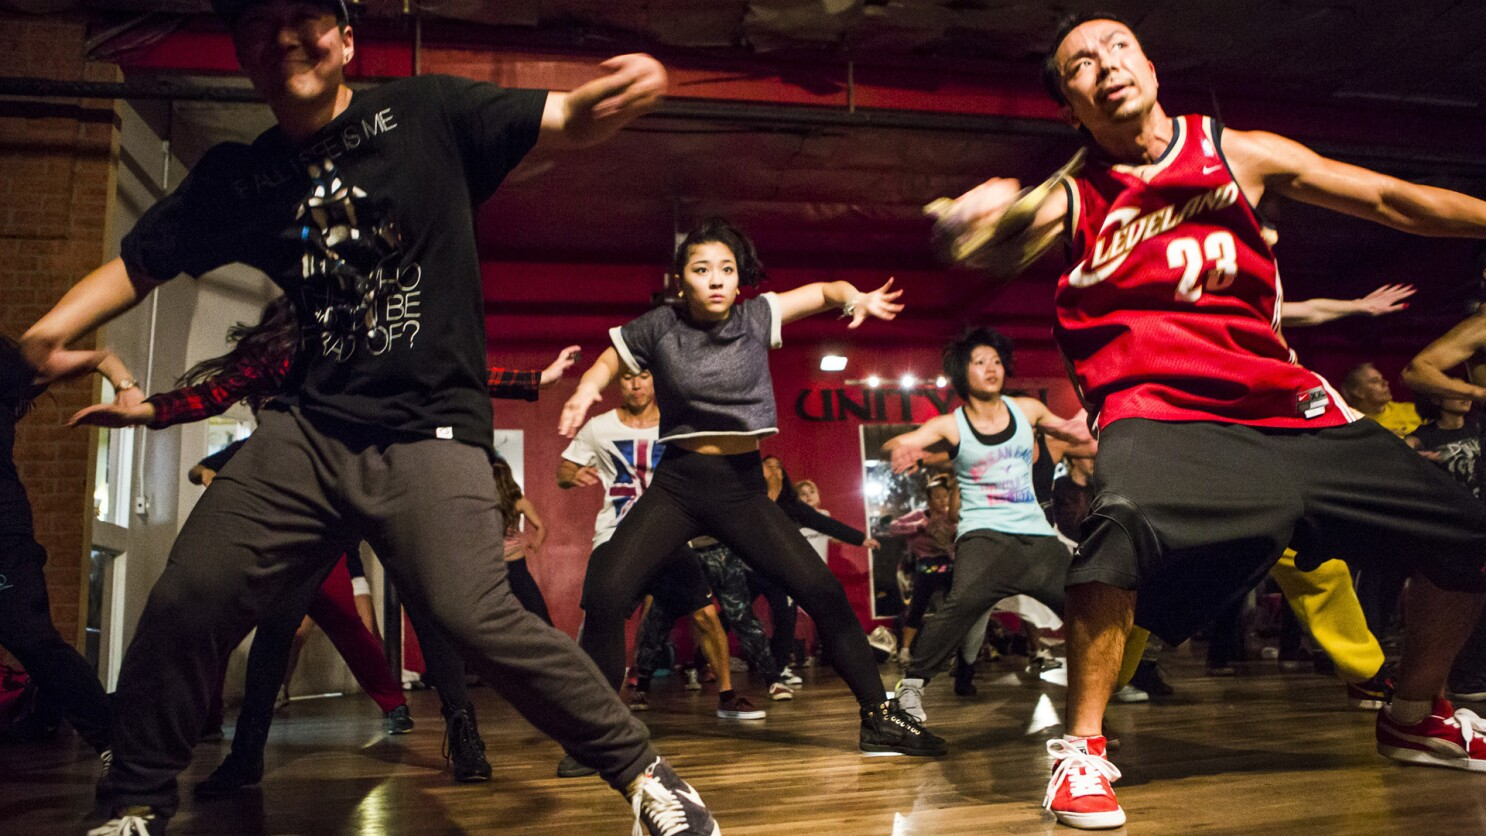 Hip-hop moves from the street to the studio - Los Angeles Times